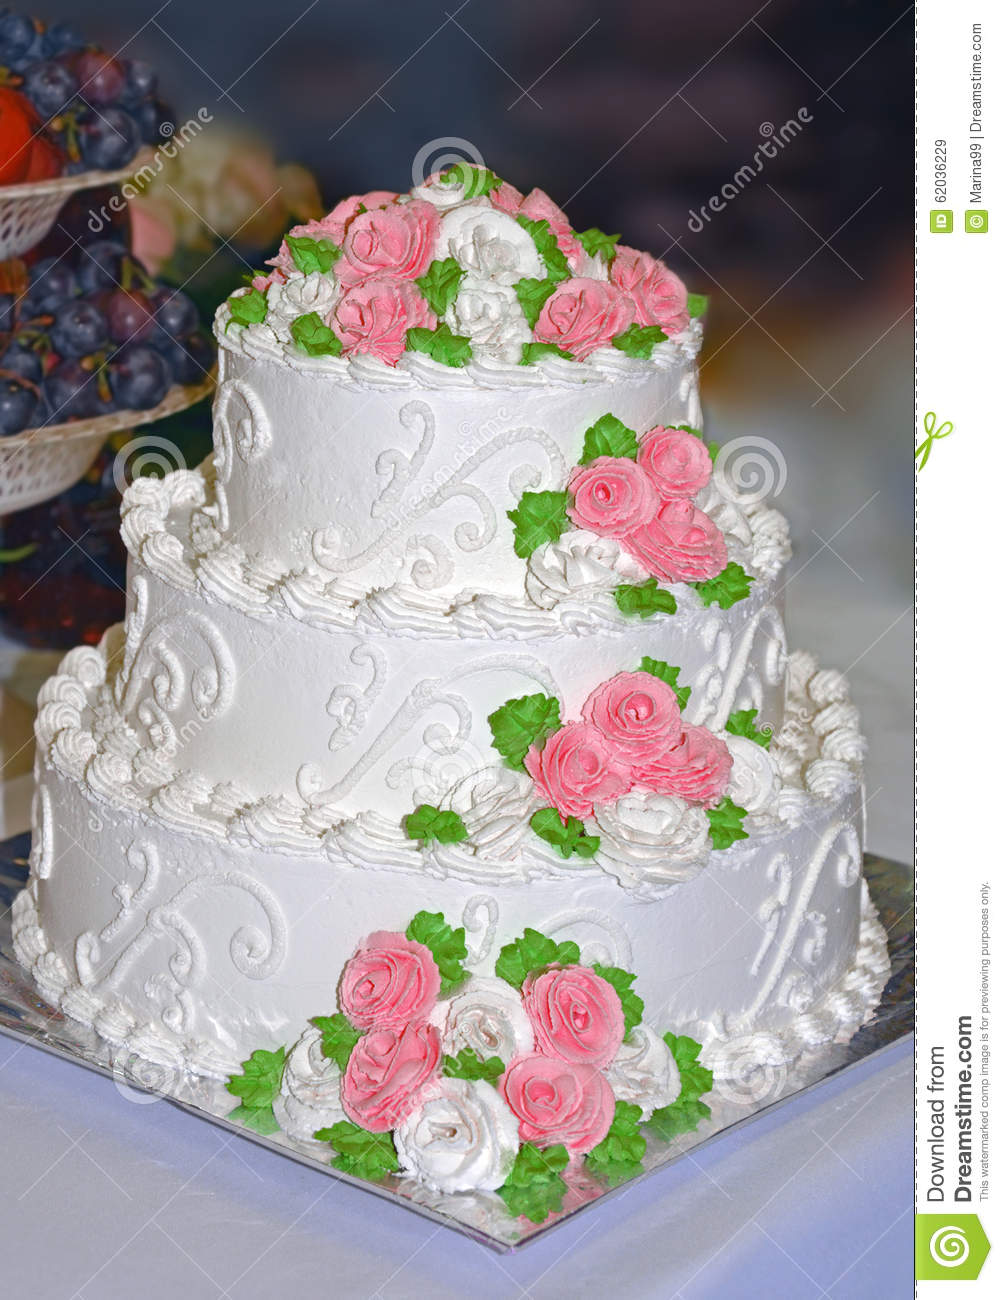 White Wedding Cake Decorated With Flowers From Cream Stock Image ...